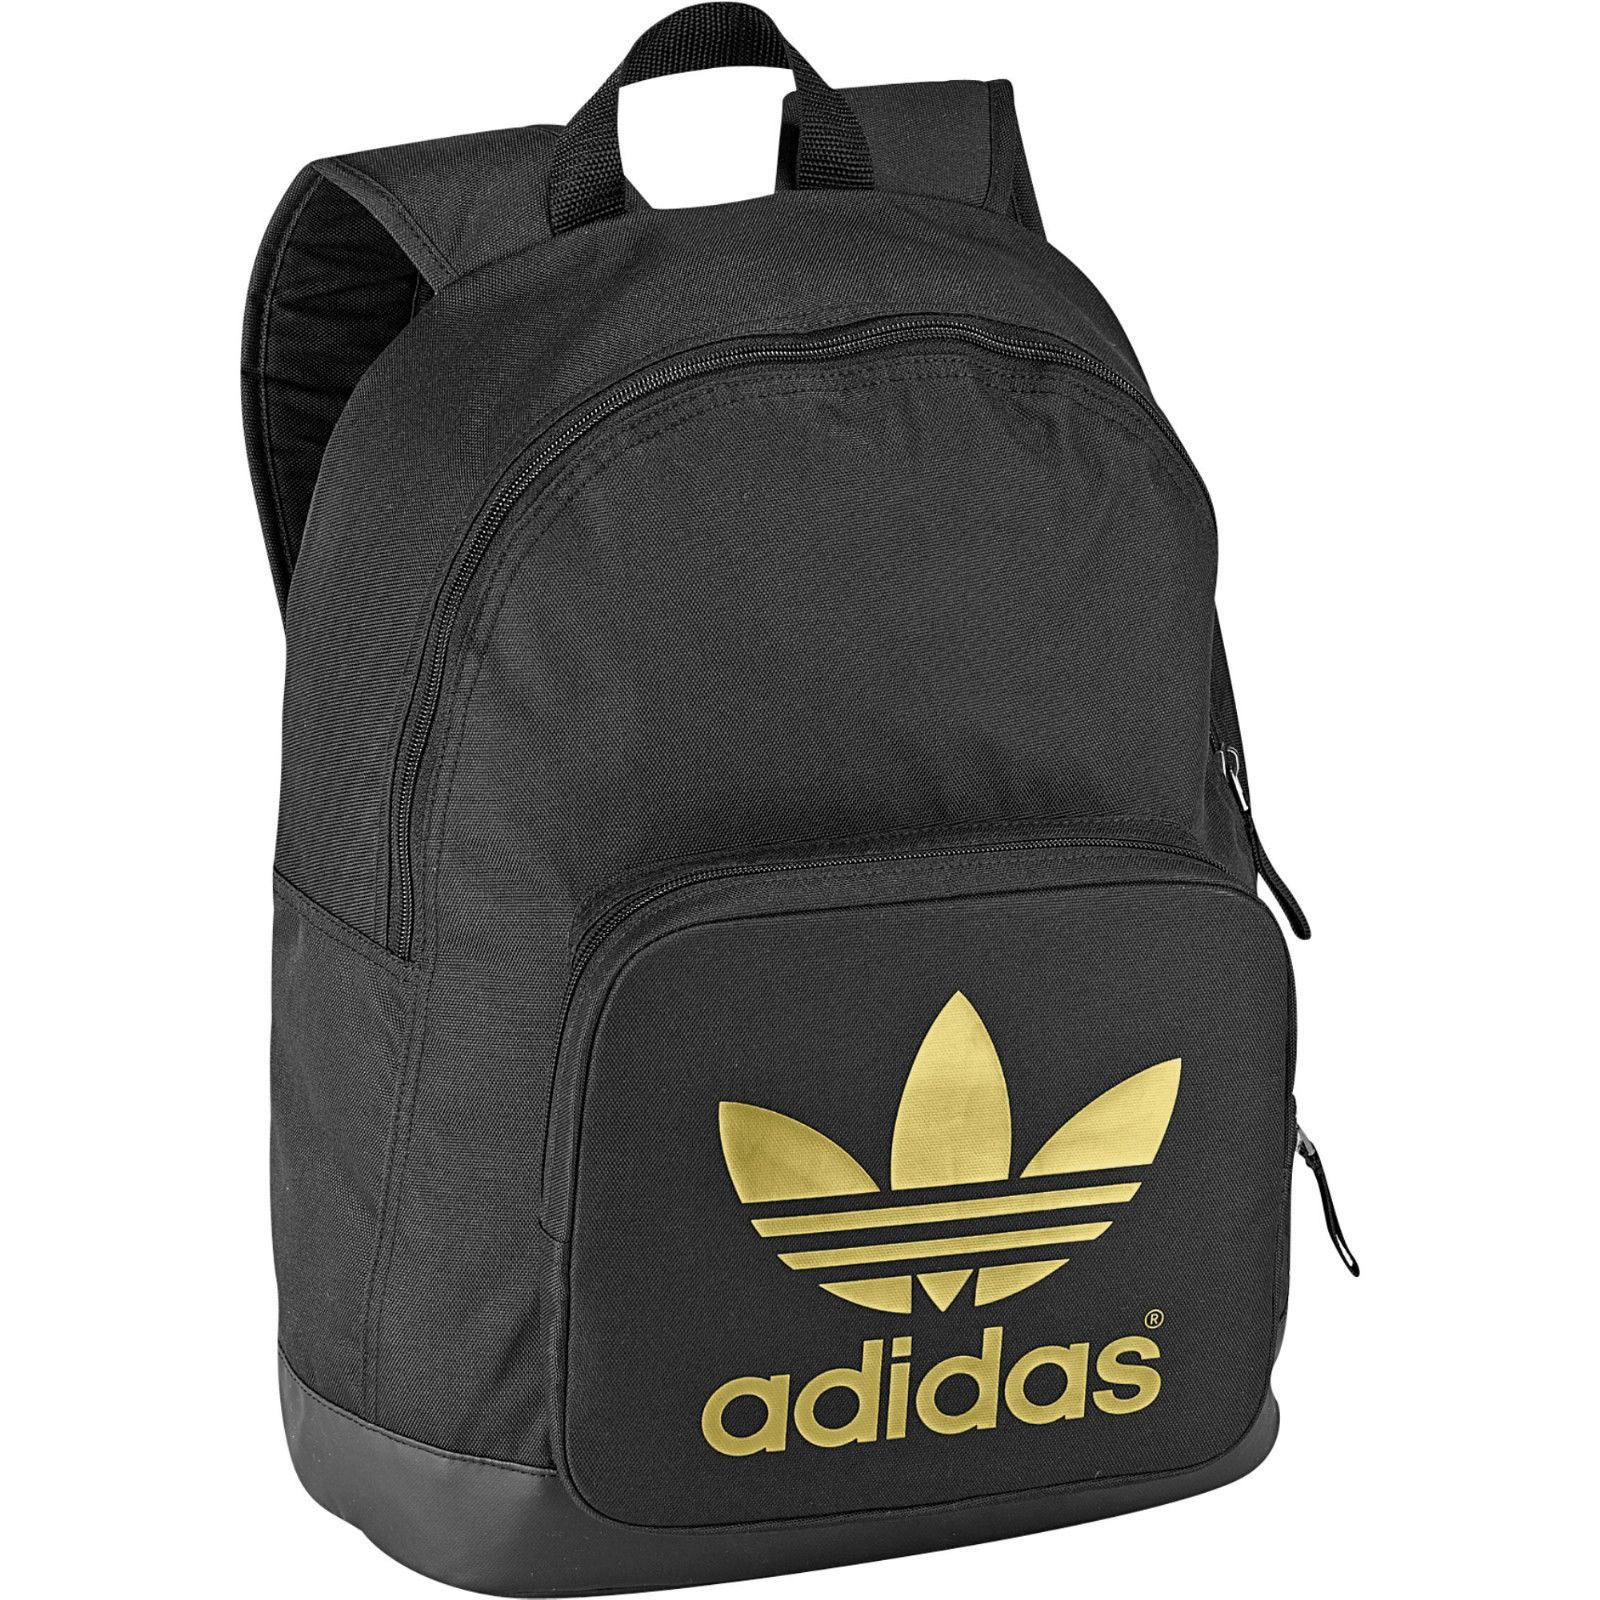 bb257f0f30 Adidas Originals Backpacks Mens Boys Girls Adidas School Backbags Rucksacks